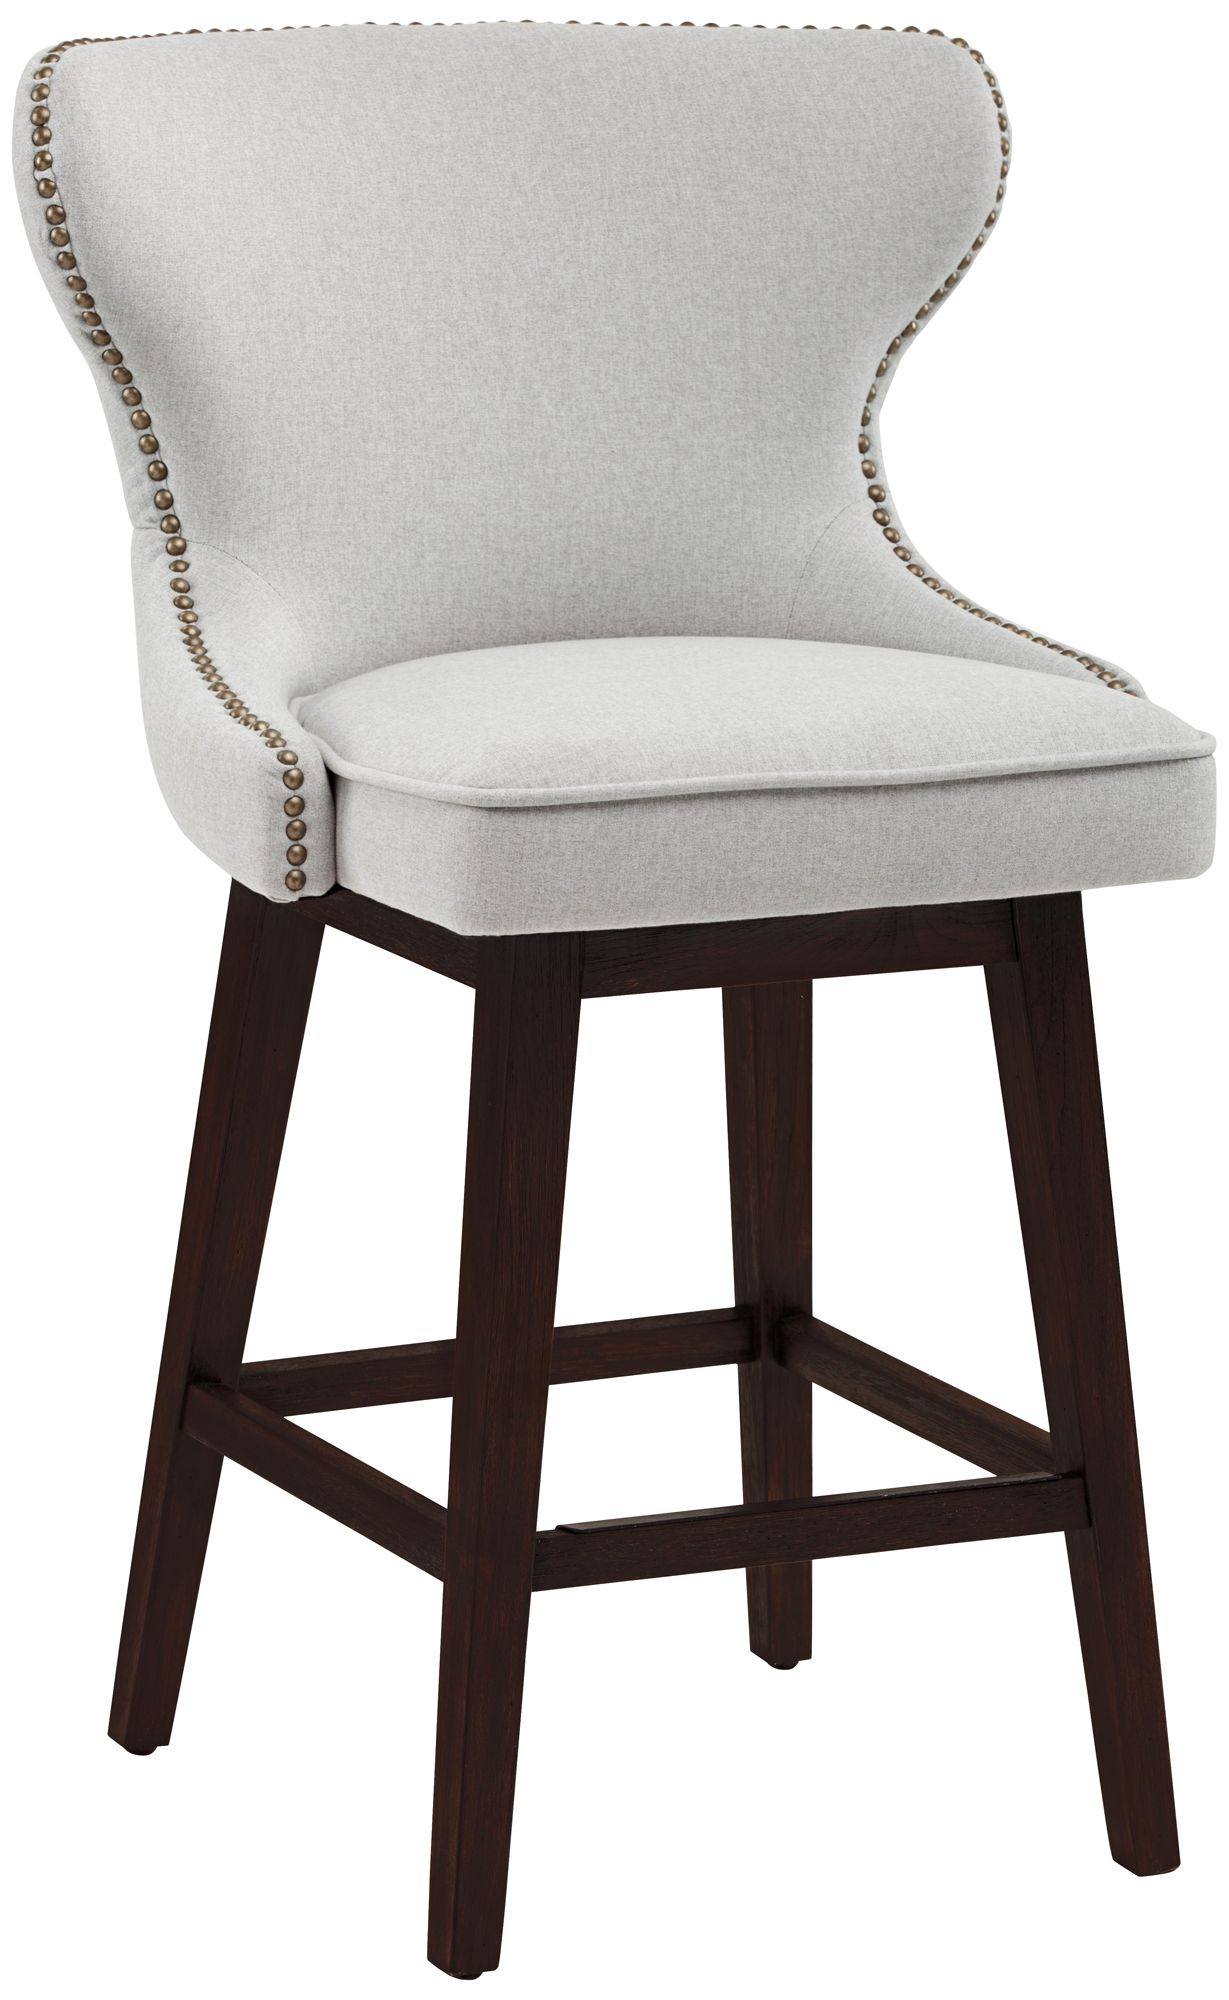 Ariana Light Gray Fabric 25 1/2  Swivel Counter Stool  sc 1 st  L&s Plus & Counter Height Stools - 24 In. to 27 In. Barstools | Lamps Plus islam-shia.org